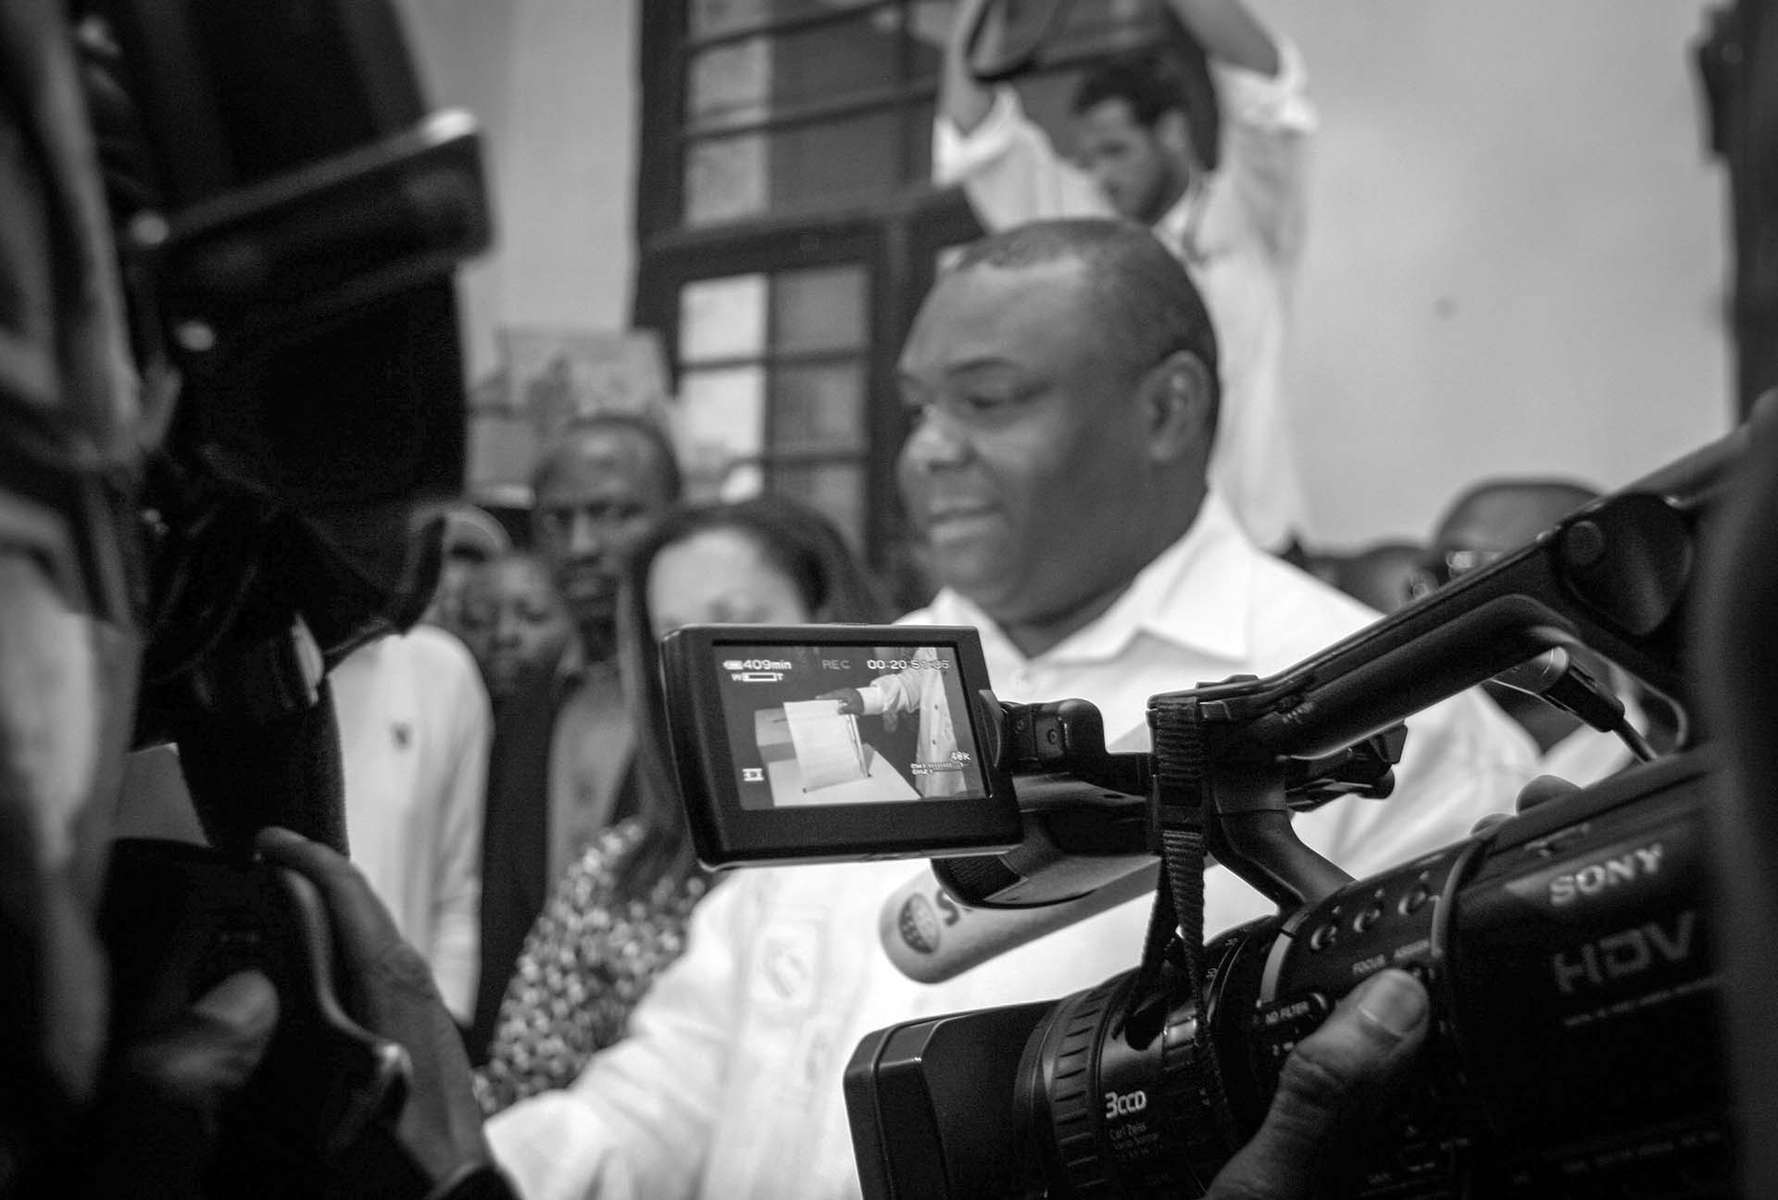 Jean Pierre Bemba, current vice president, former warlord, and presidential candidate casts his vote.